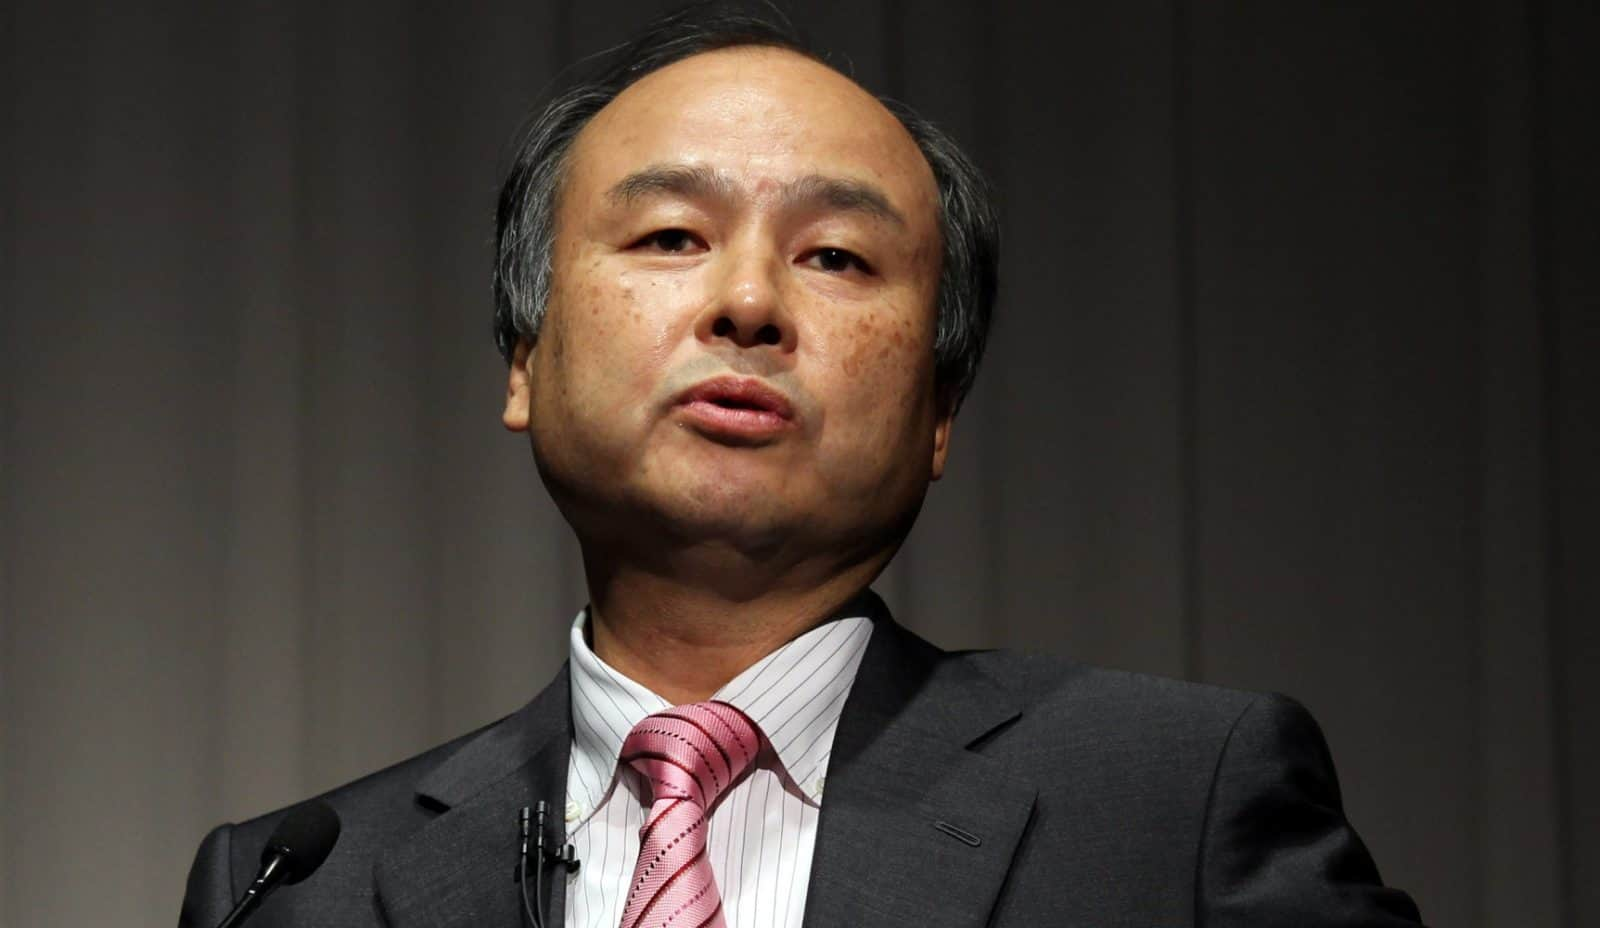 softbank ceo masayoshi son promotes former google exec. Black Bedroom Furniture Sets. Home Design Ideas